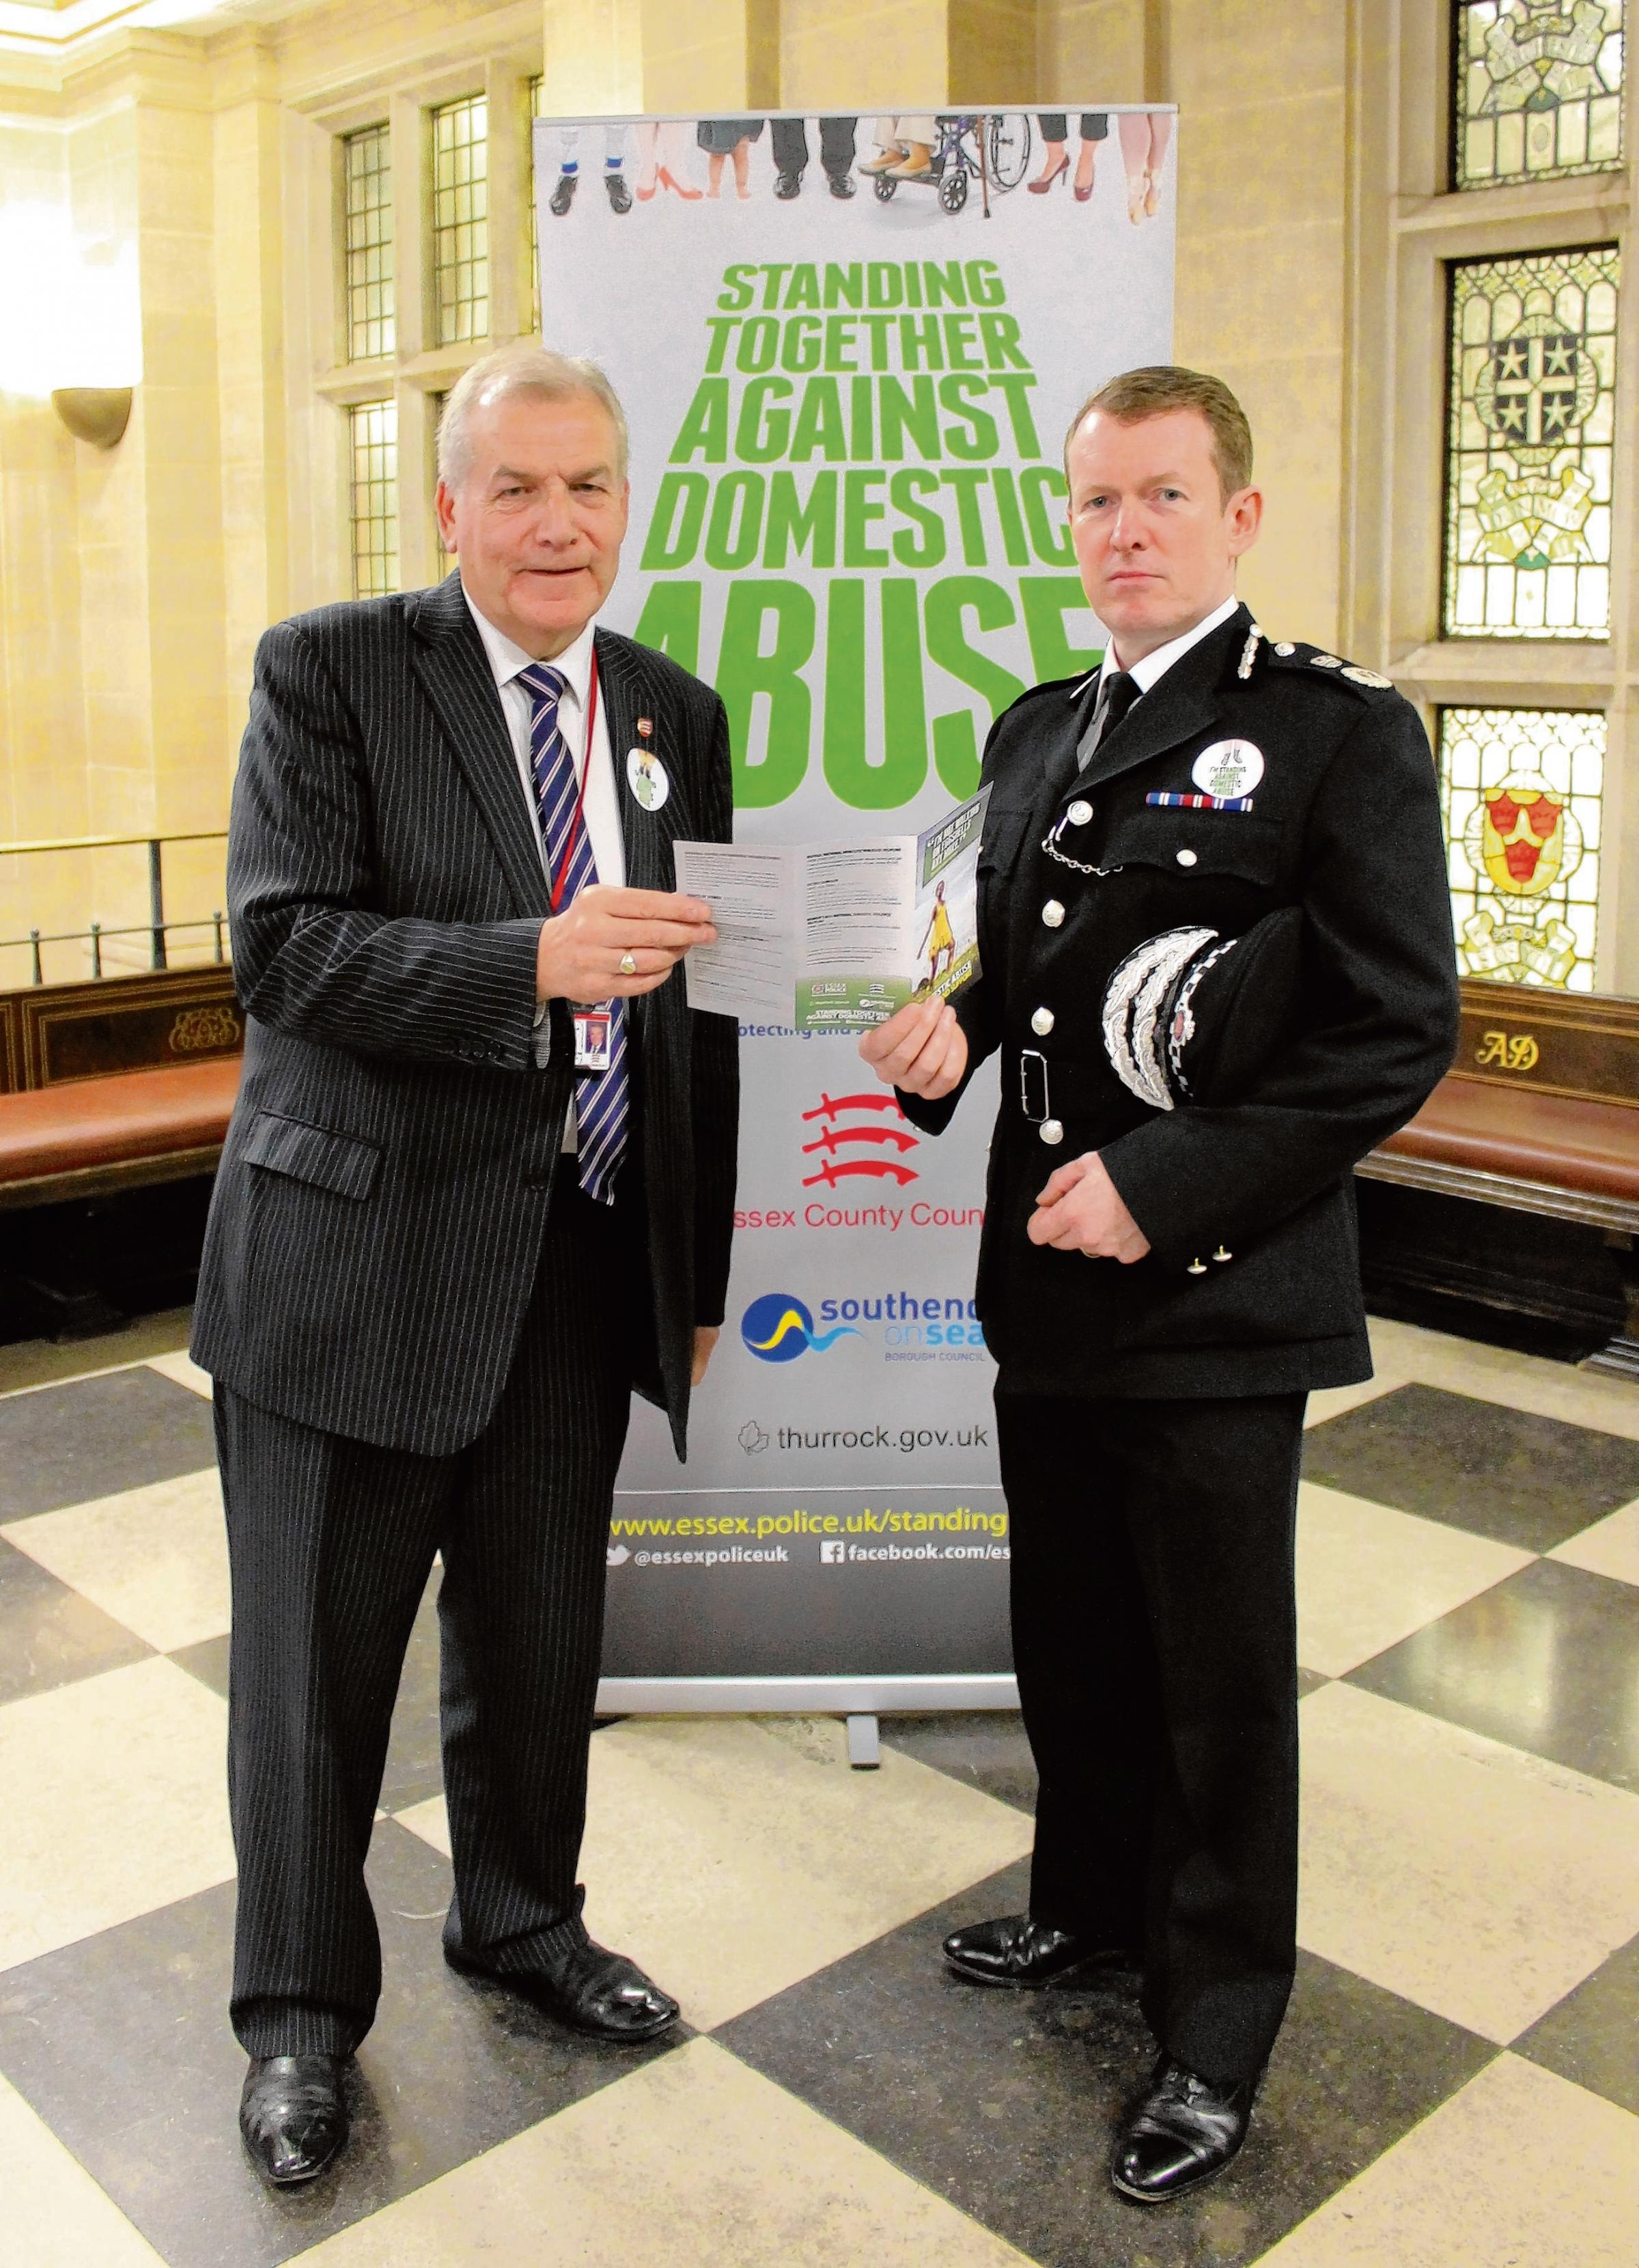 Cabinet member Dick Madden and Chief Constable Stephen Kavanagh